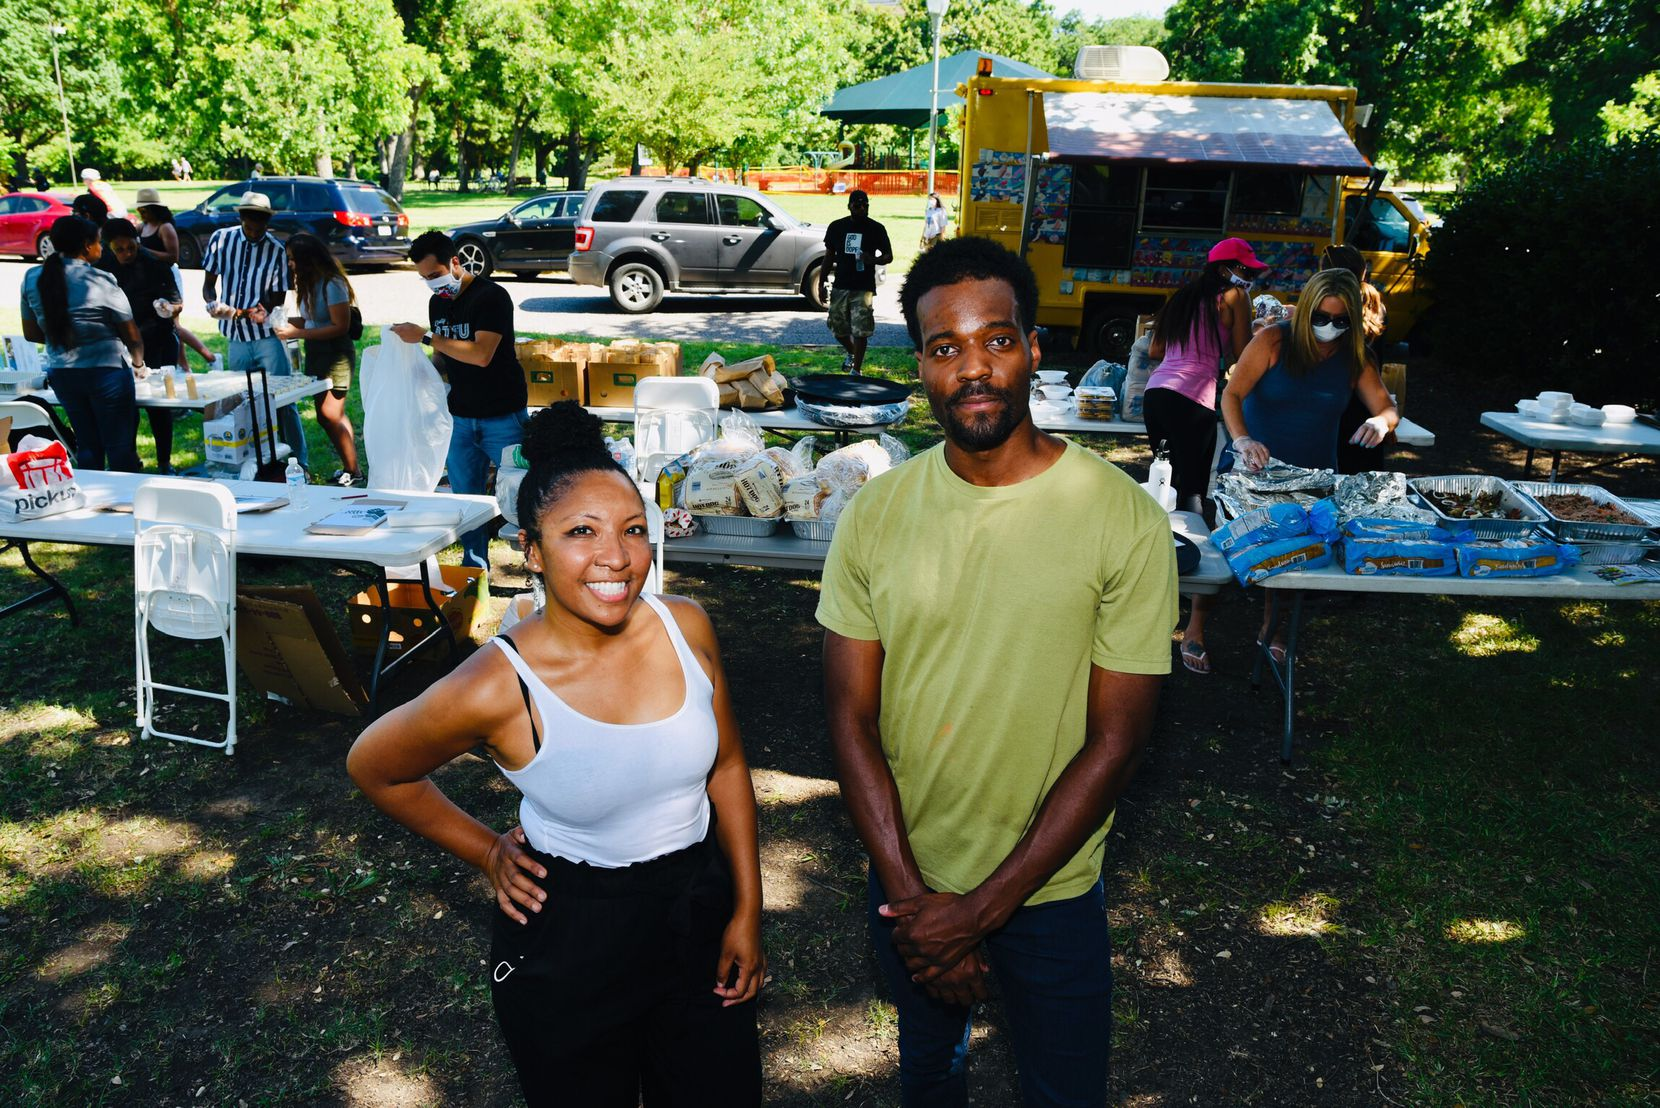 Deah Berry Mitchell, vendor organizer, and Jeziel Jones, head organizer for the Potluck Protest, pose at the vendor tables during the Potluck Protest to support Black-owned restaurants, Saturday, June 13, 2020 at Reverchon Park in Dallas.